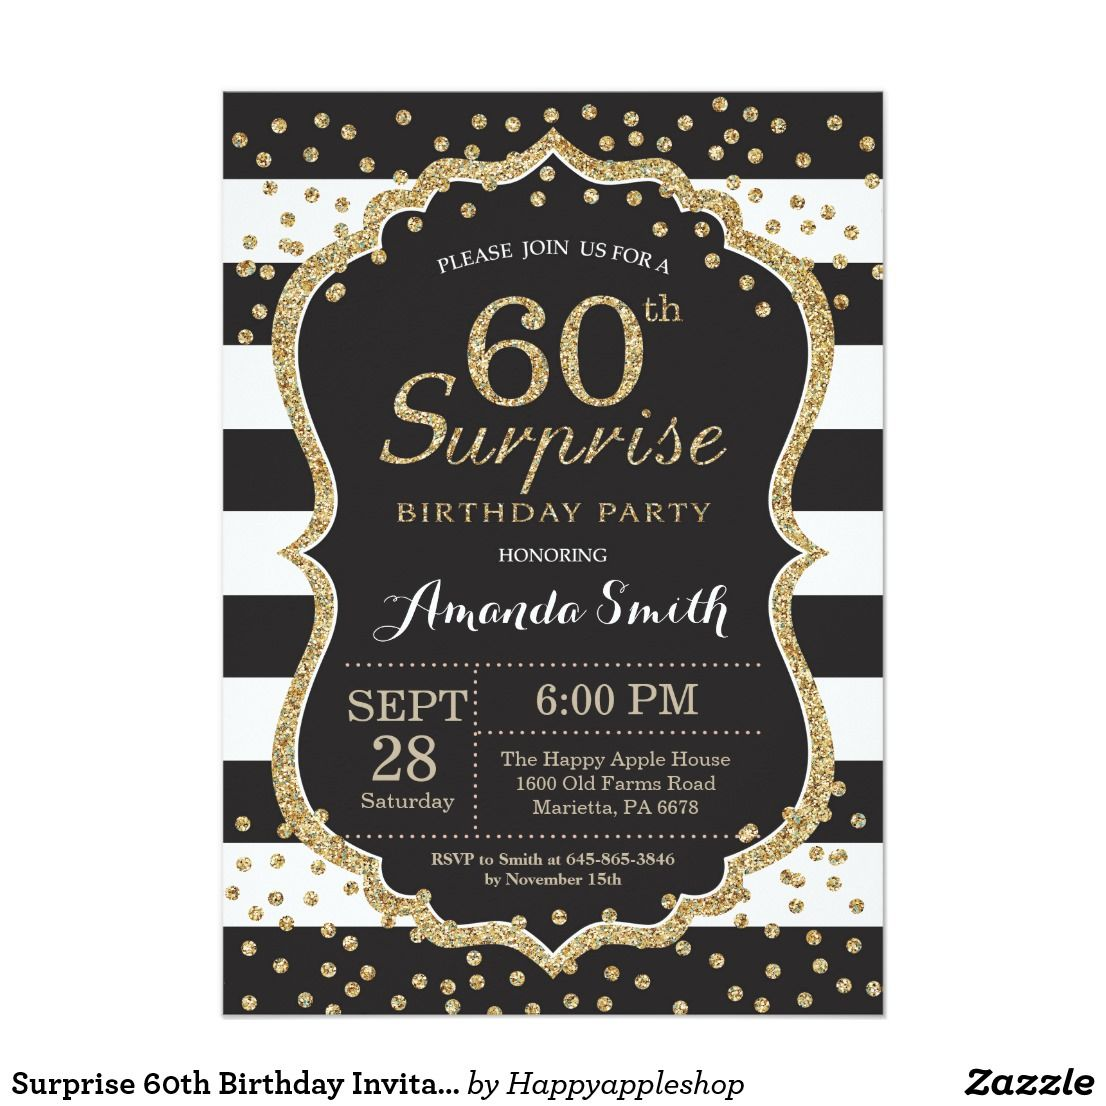 Surprise 60th birthday invitation gold glitter card surprise 60th gold glitter card surprise 60th birthday invitation for women or man black and gold birthday party invite gold glitter confetti black and white stripes filmwisefo Image collections